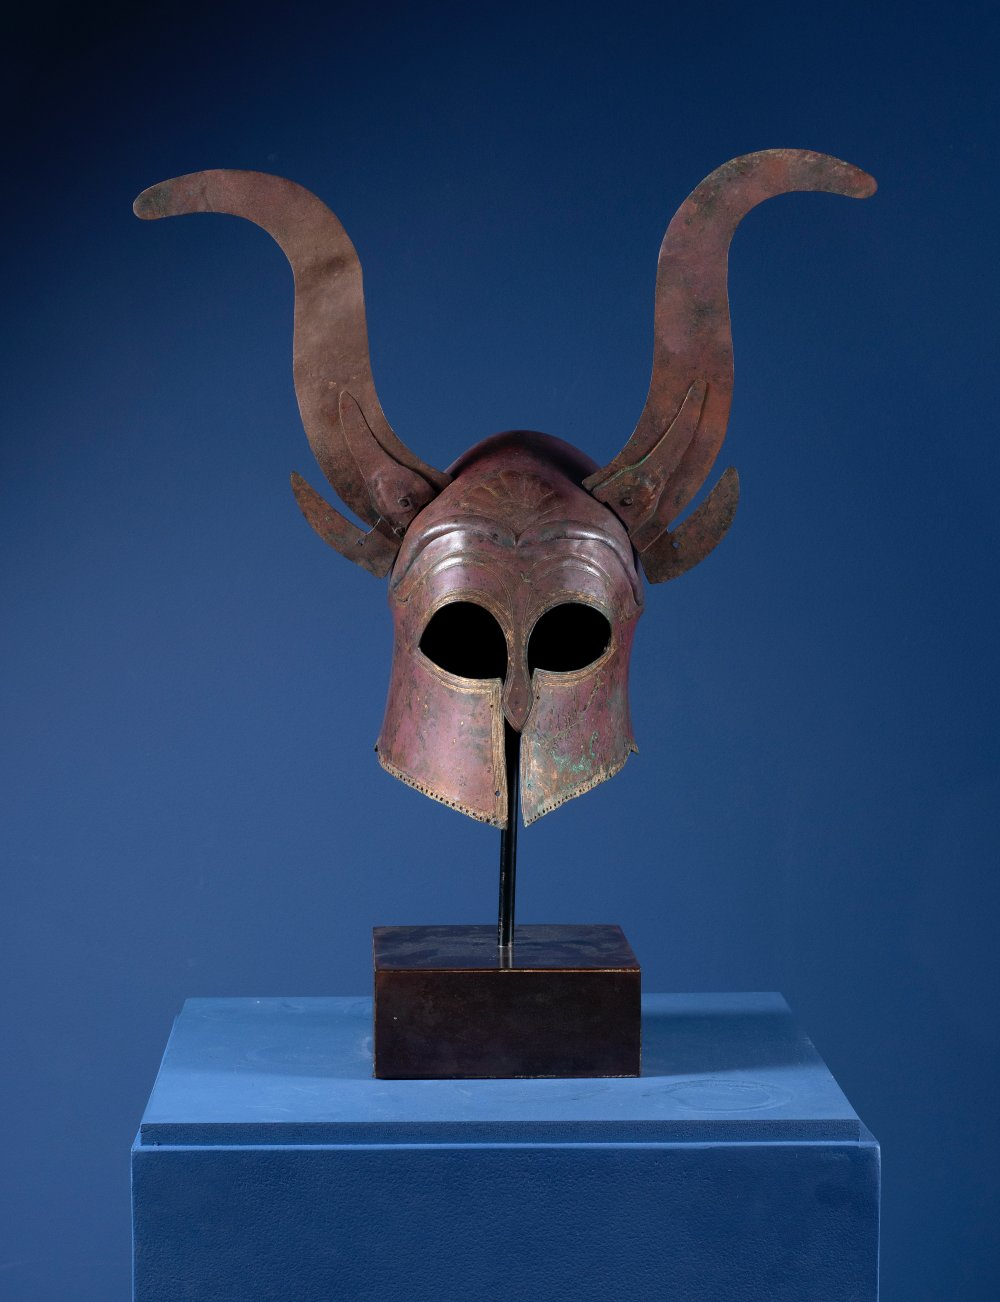 Corinthian Type Helmet with Horns, Greek, Late Archaic – Early Classical  Period, ca. 500 – 450 B.C.